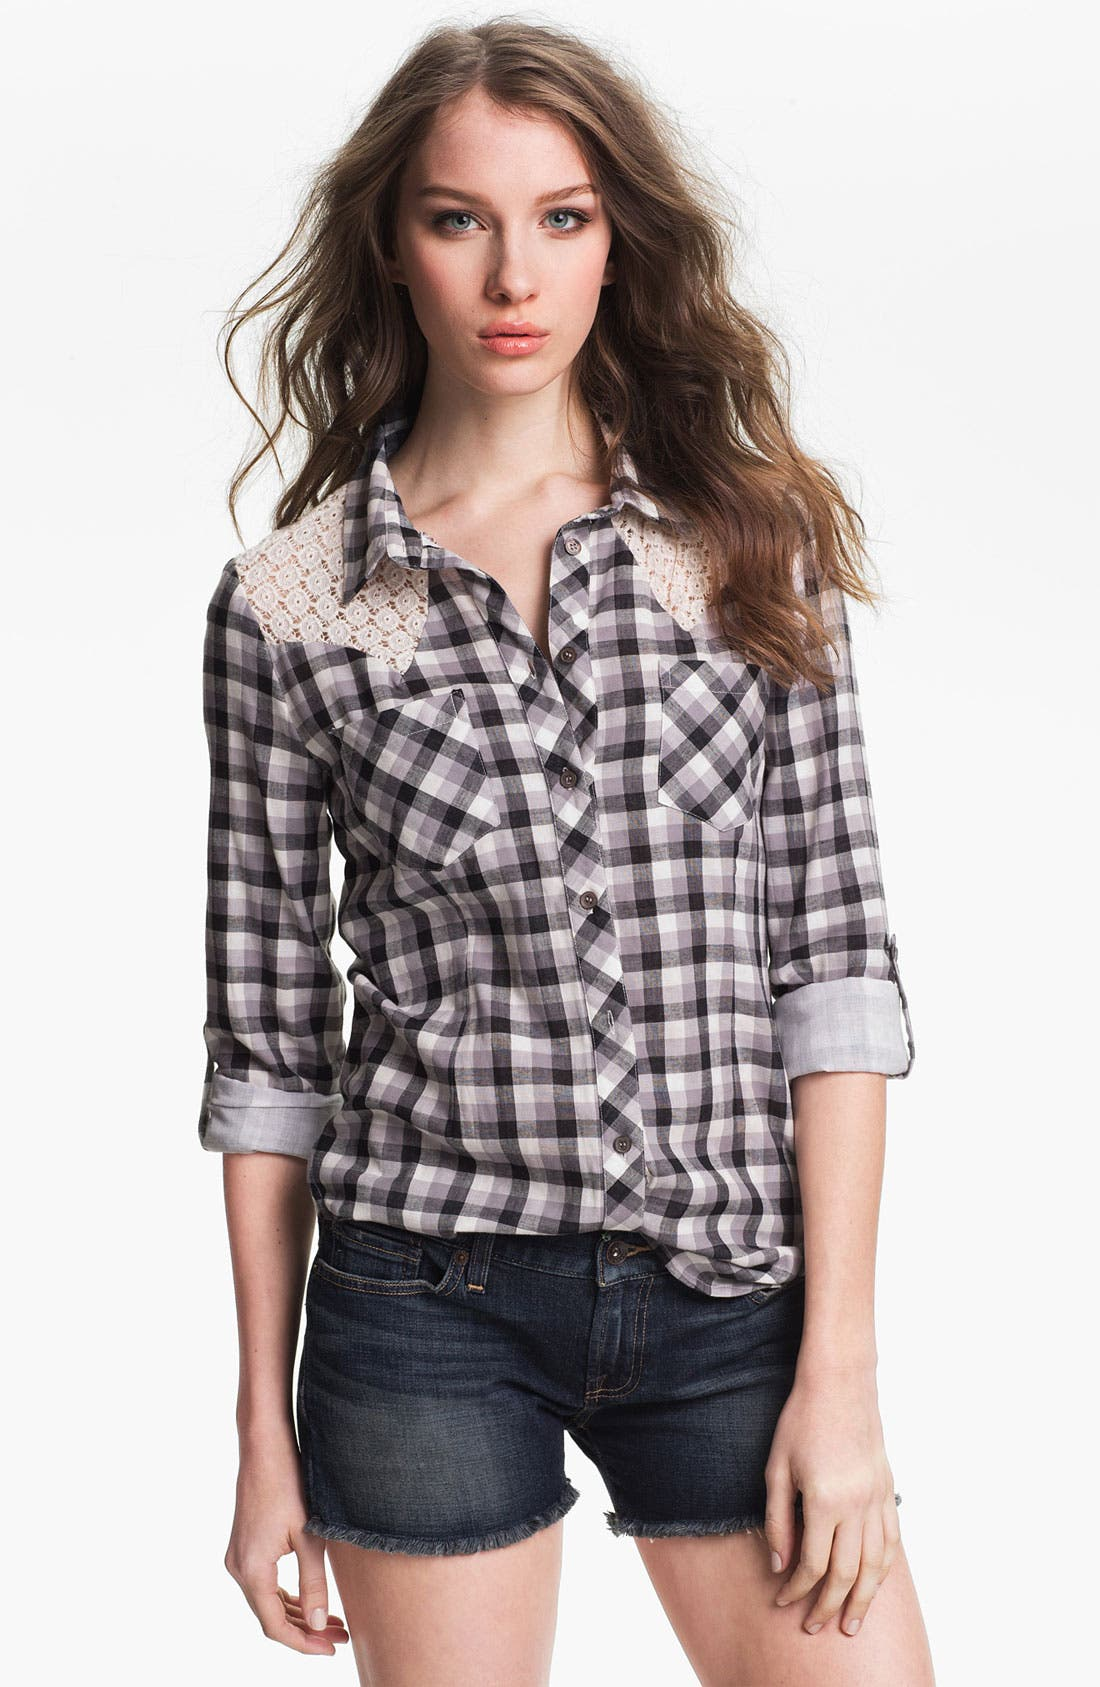 Alternate Image 1 Selected - Two by Vince Camuto Lace Trim Plaid Shirt